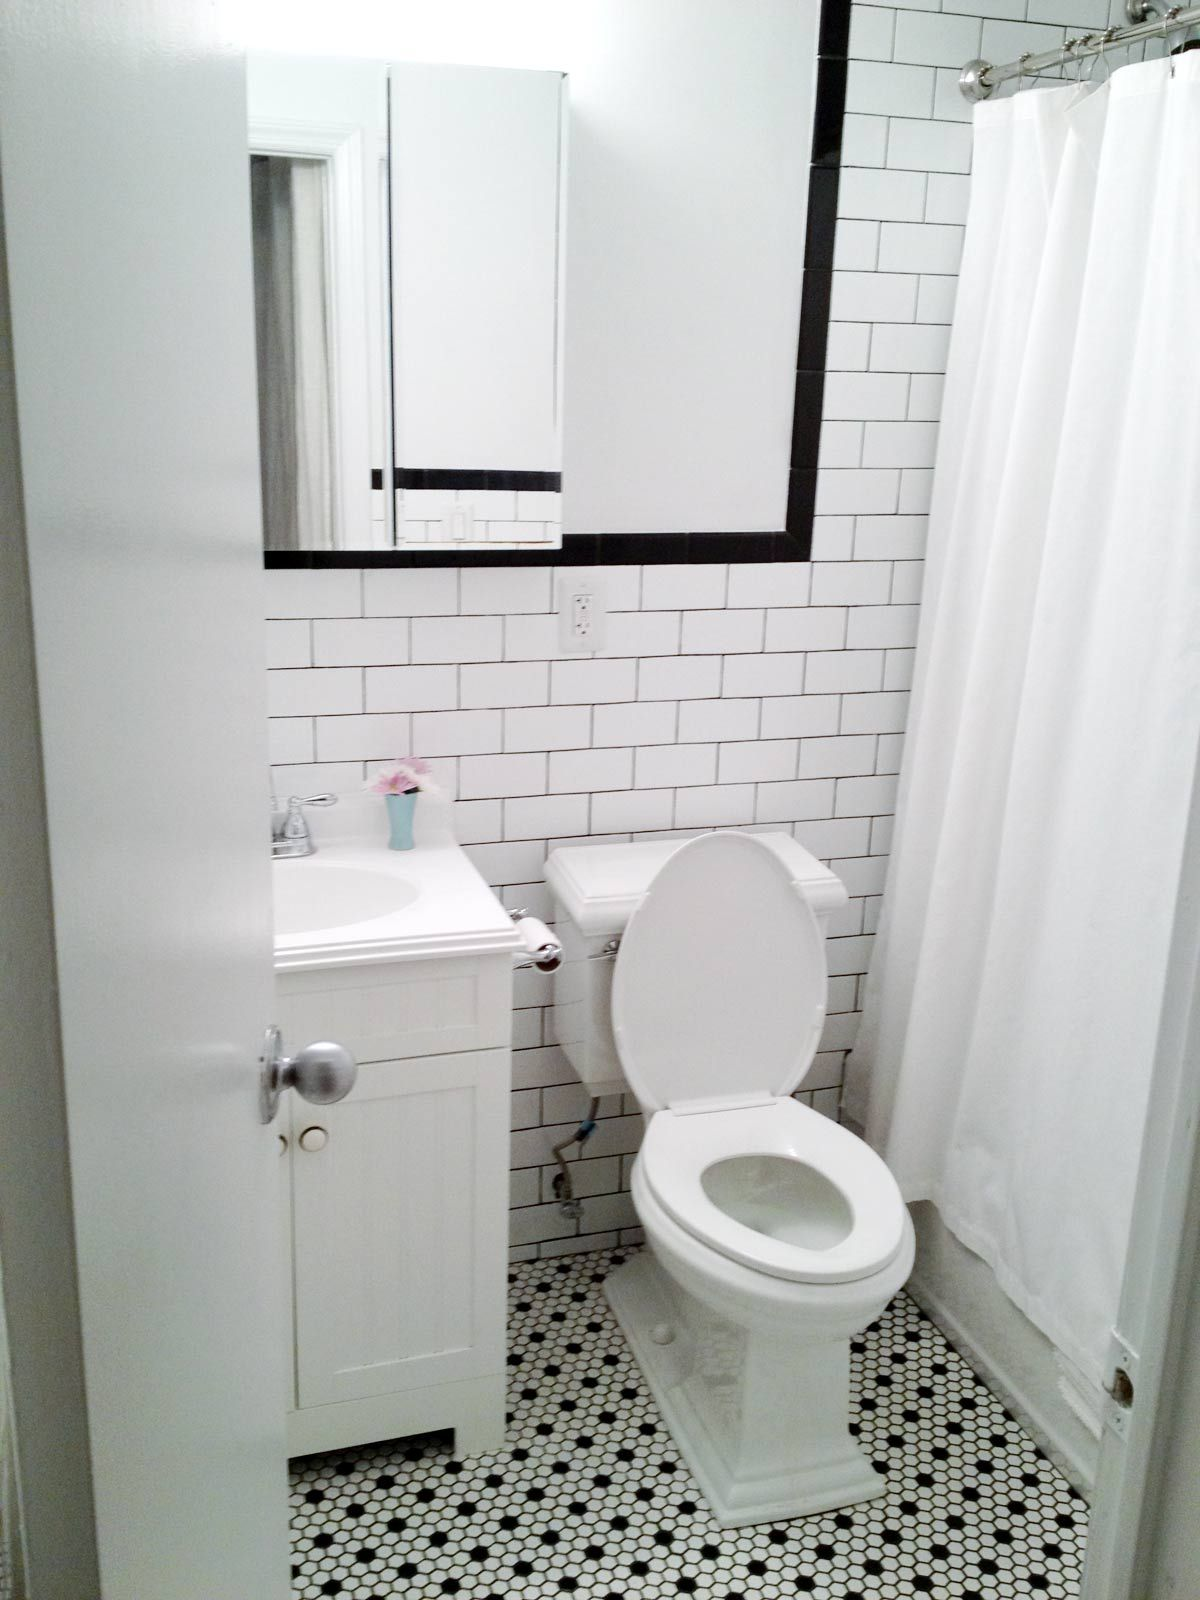 White subway wall tiles with black grout, black bullnose floor tiles ...